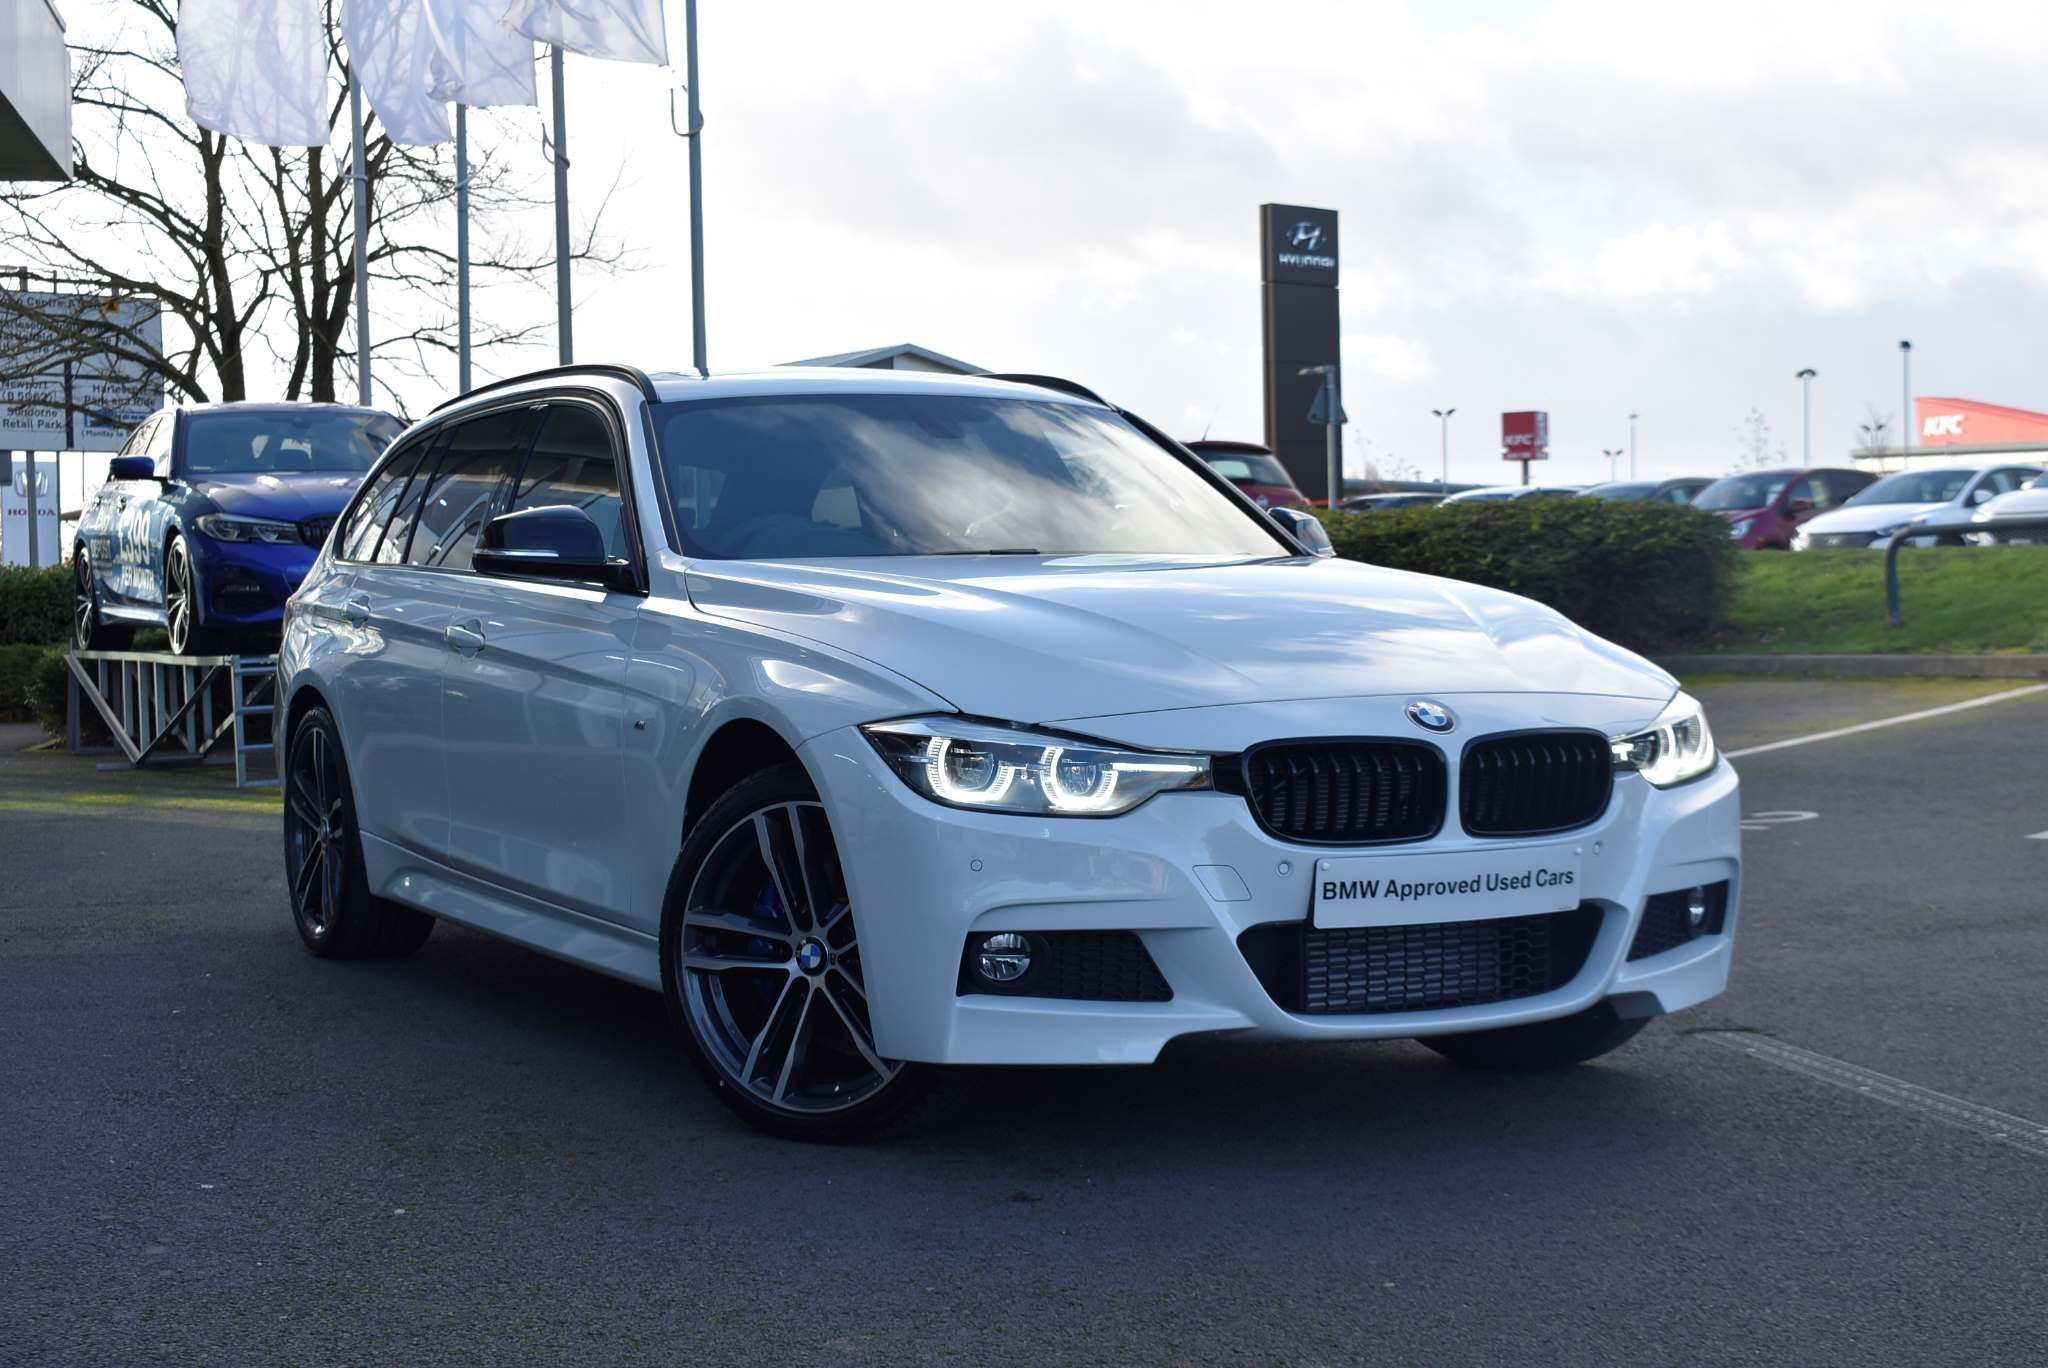 BMW 3 Series 320d xDrive MSport ShadowEdition Touring 2.0 5dr PAN ROOF PRO NAV LEATHER